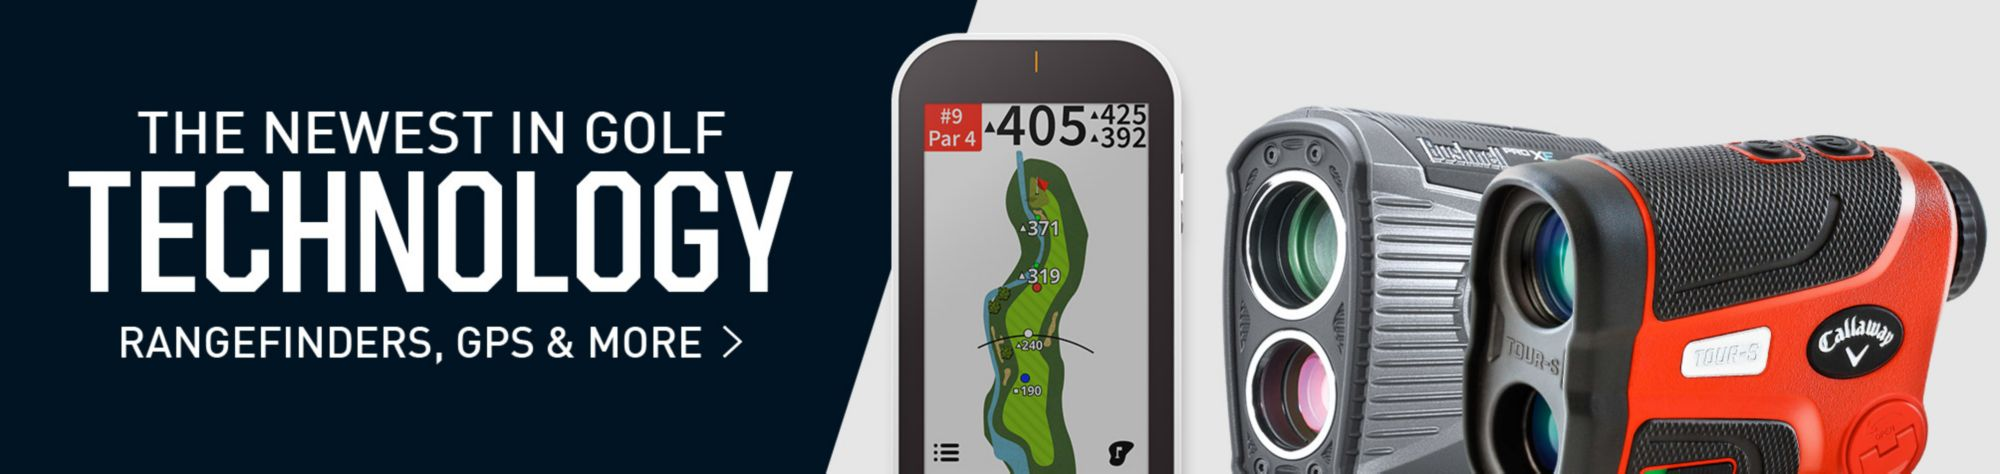 The Newest In Golf Technology